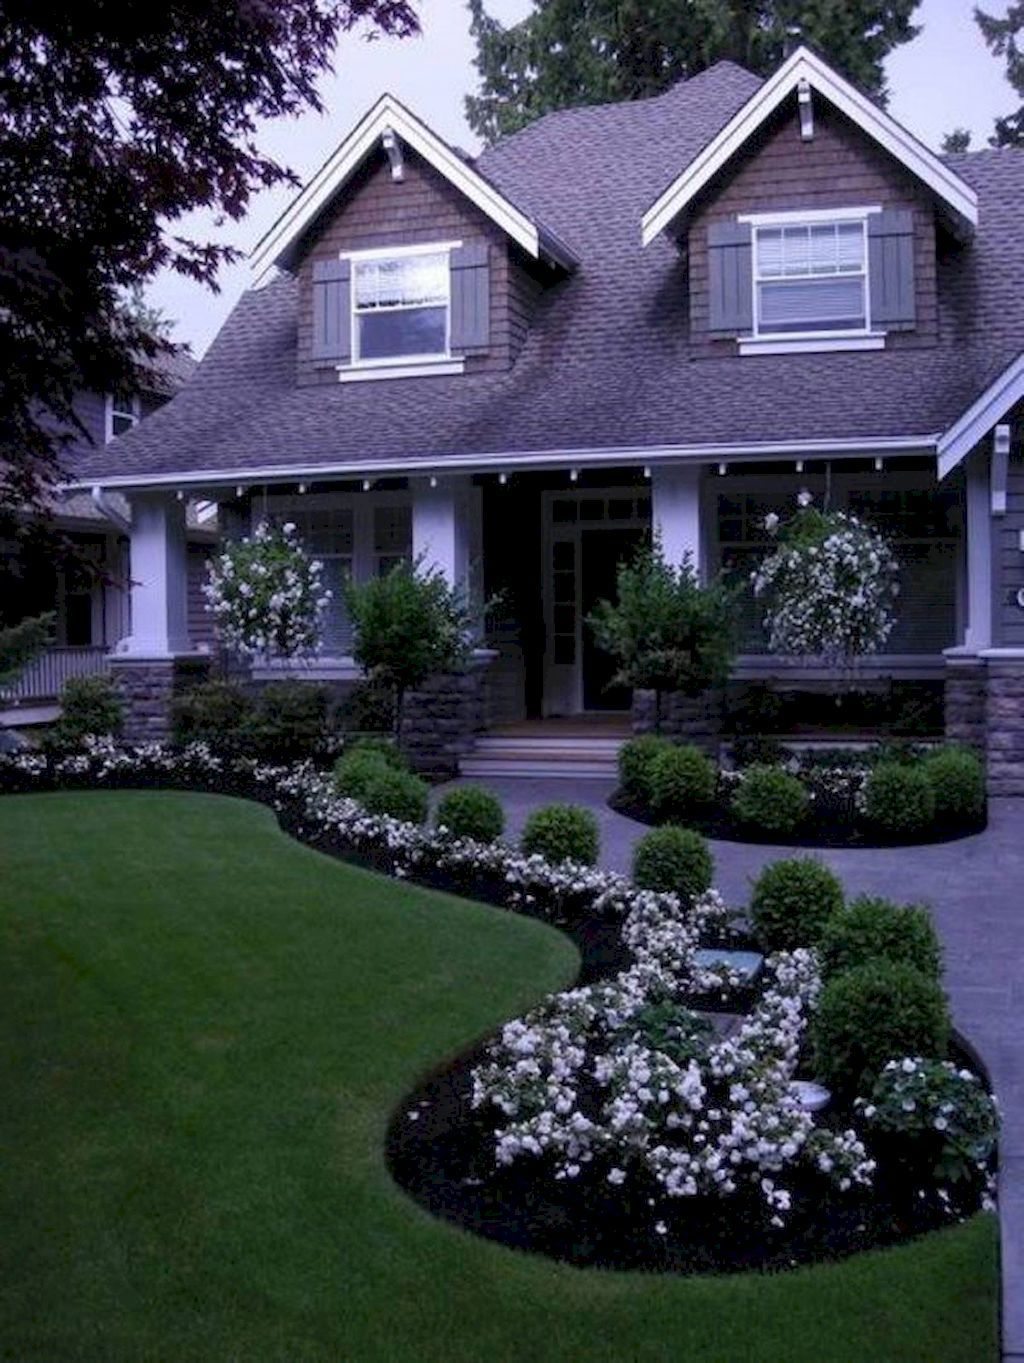 40 Beautiful Front Yard Landscaping Ideas | Yard landscaping ...